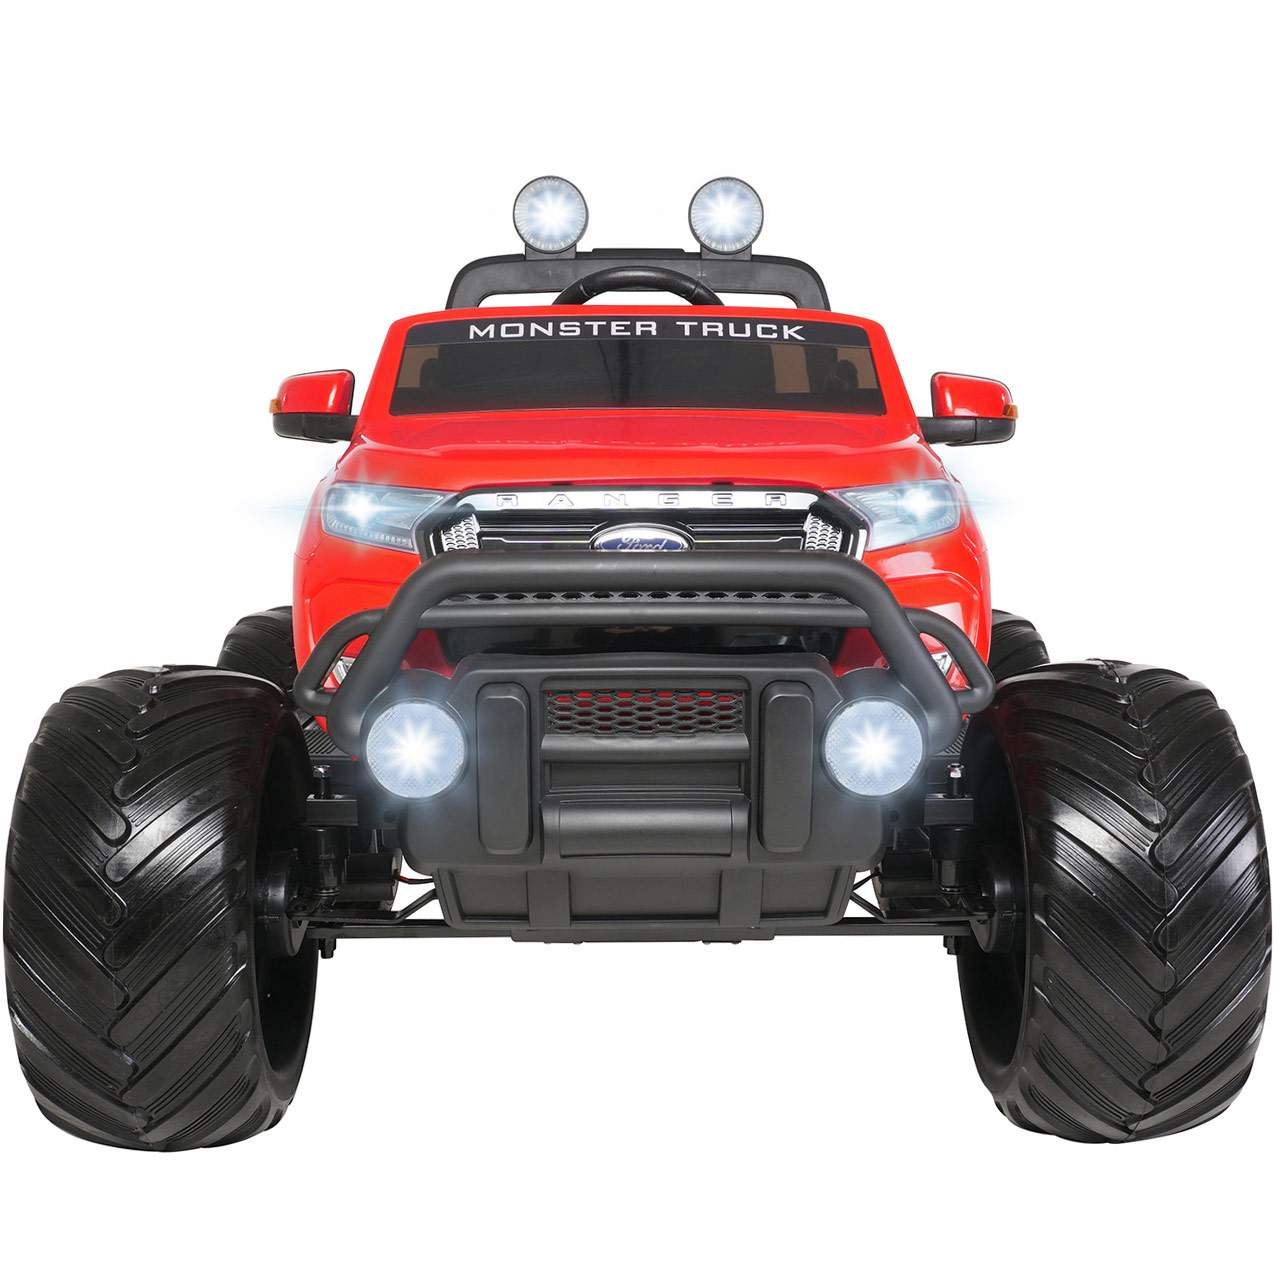 Ranger Monster Truck